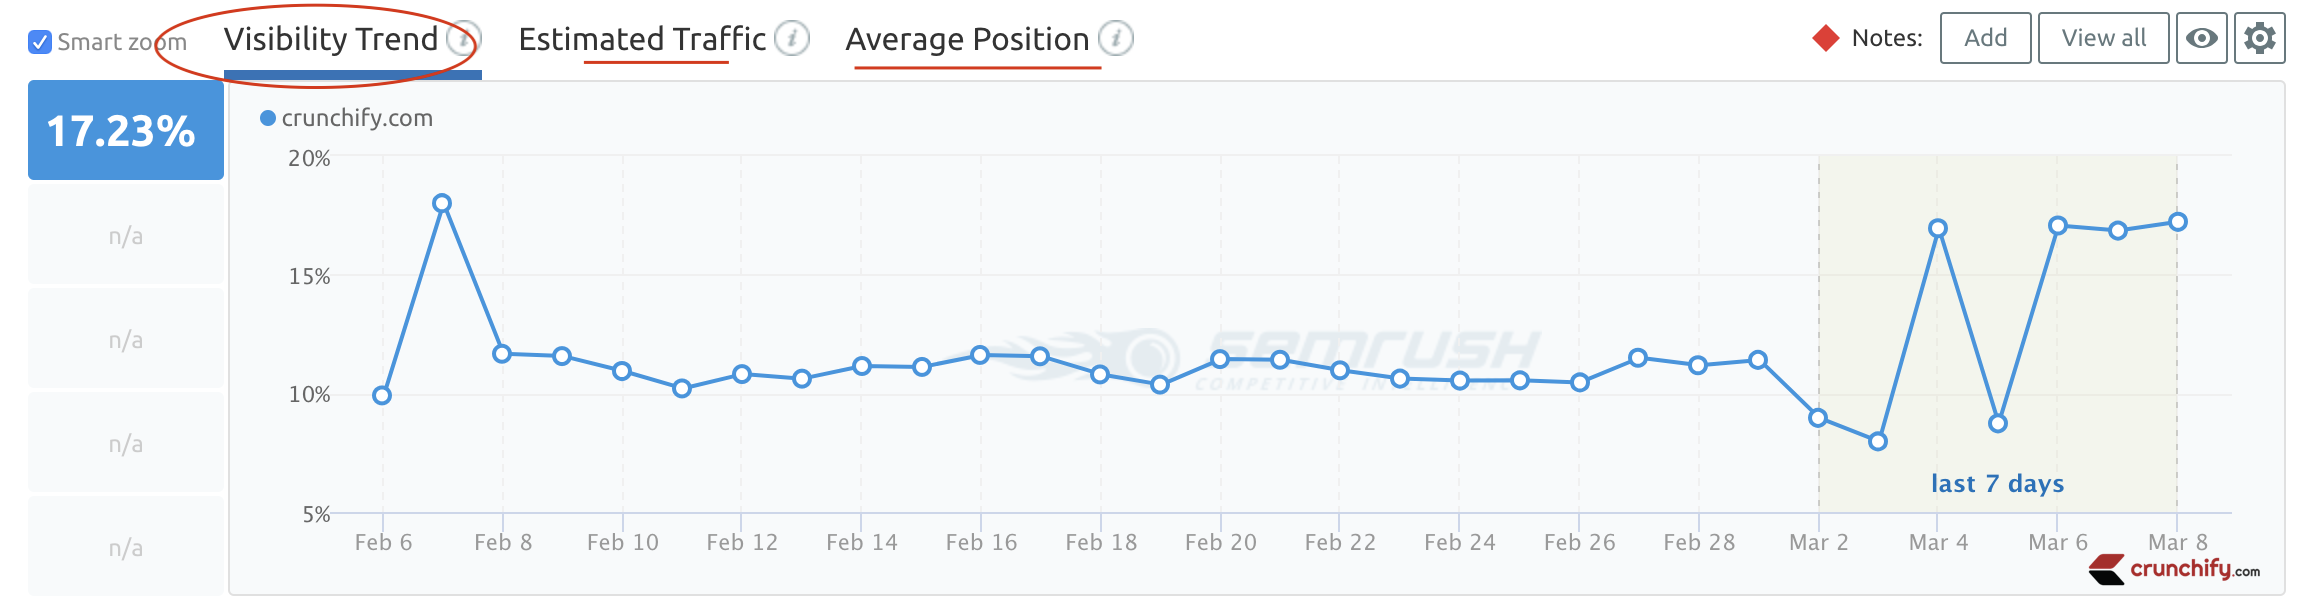 SEO Visibility Trend, Estimated Traffic, Average Position Tricks